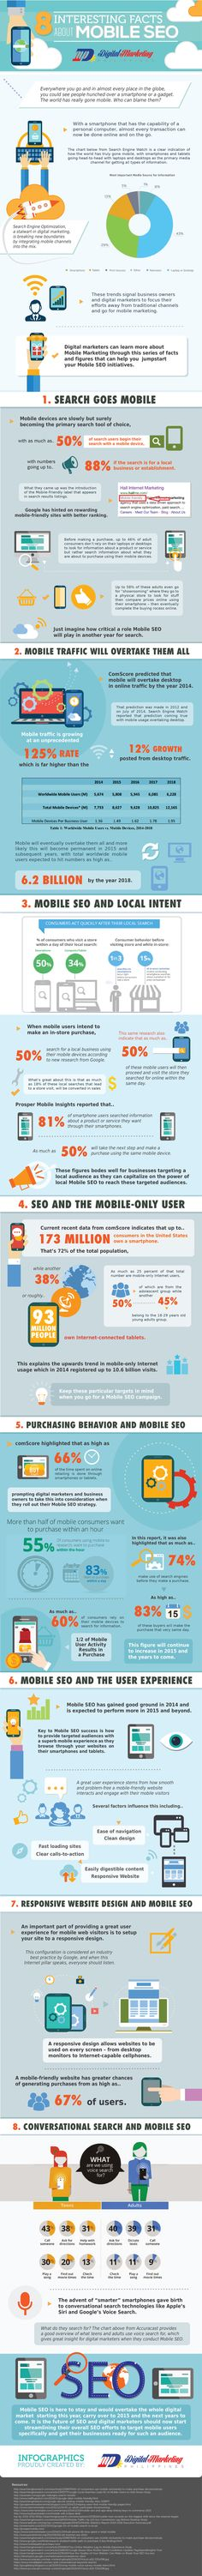 8 Interesting Facts About Mobile SEO (Infographic) | via @borntobesocial